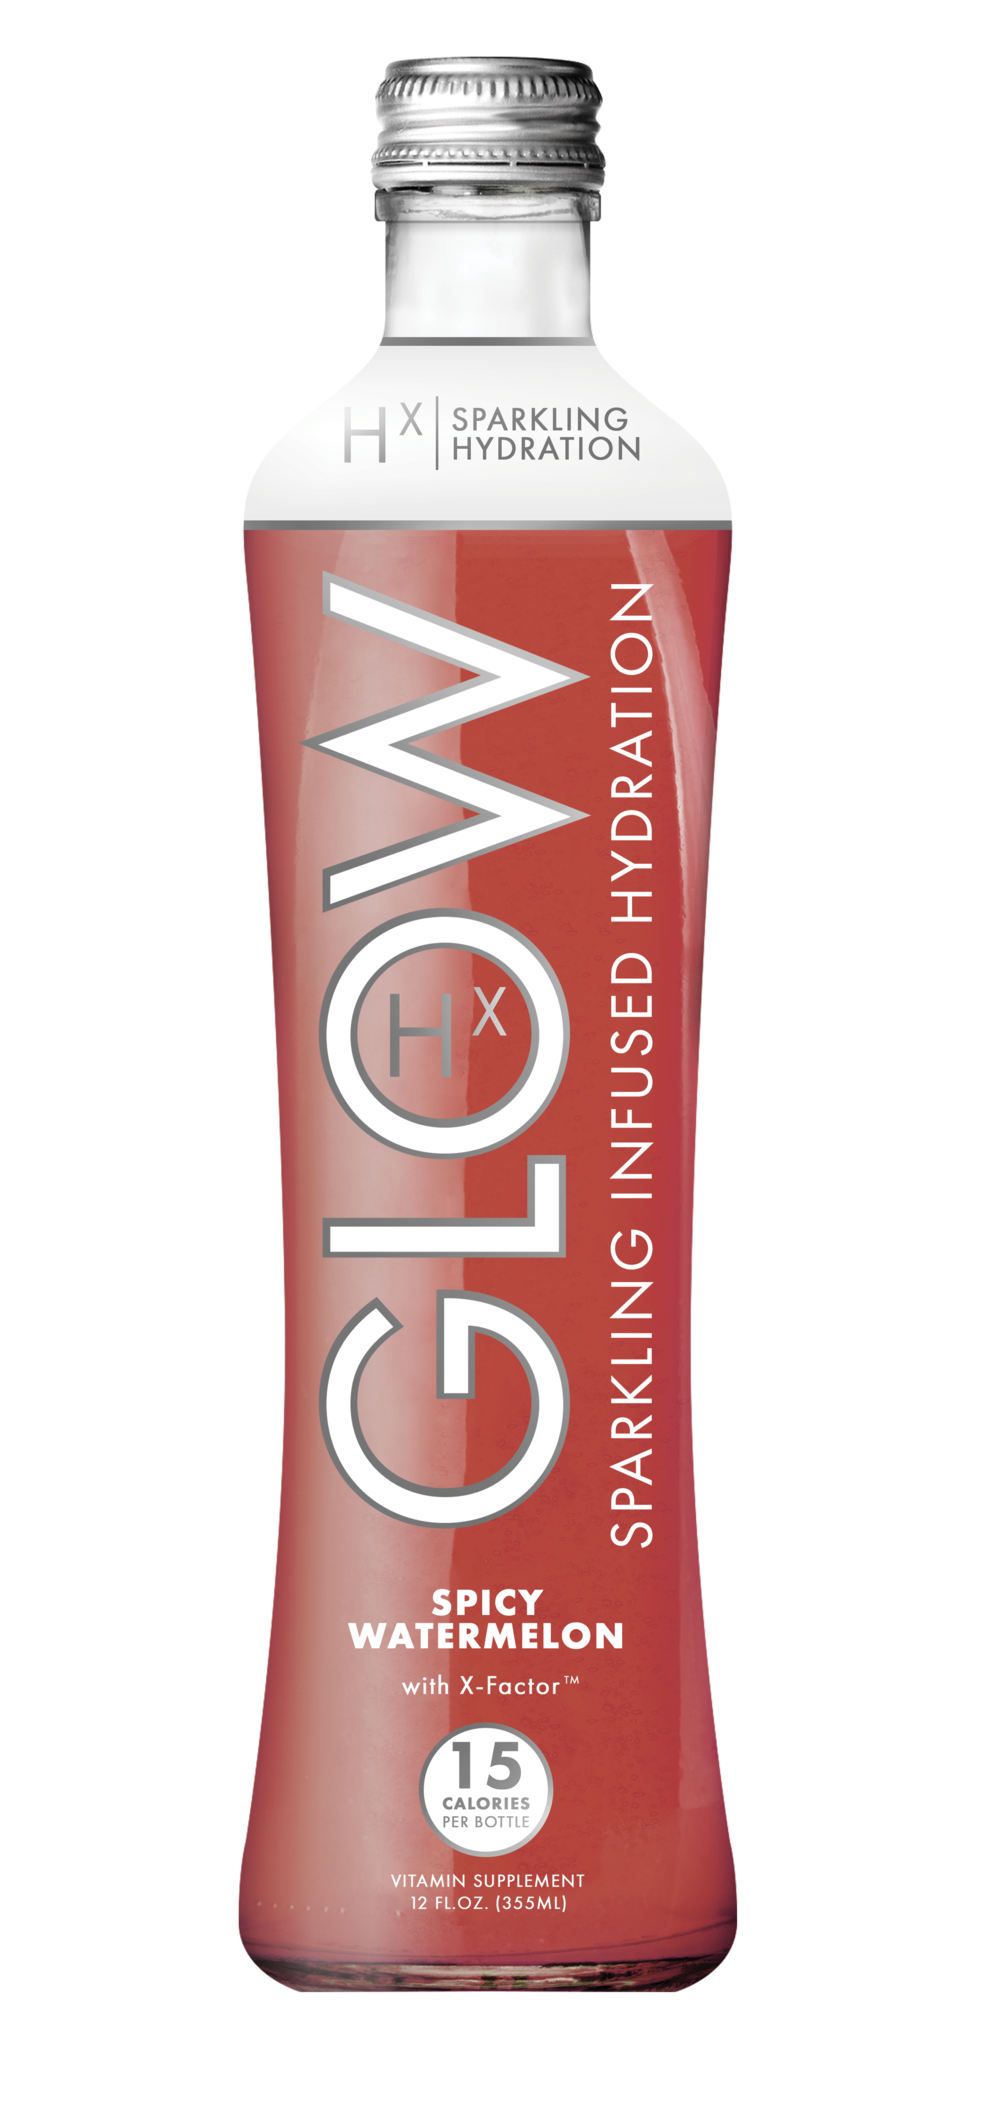 GLOW Sparkling Infused Beverages Hydration Spicy Watermelon Glass Single Bottle